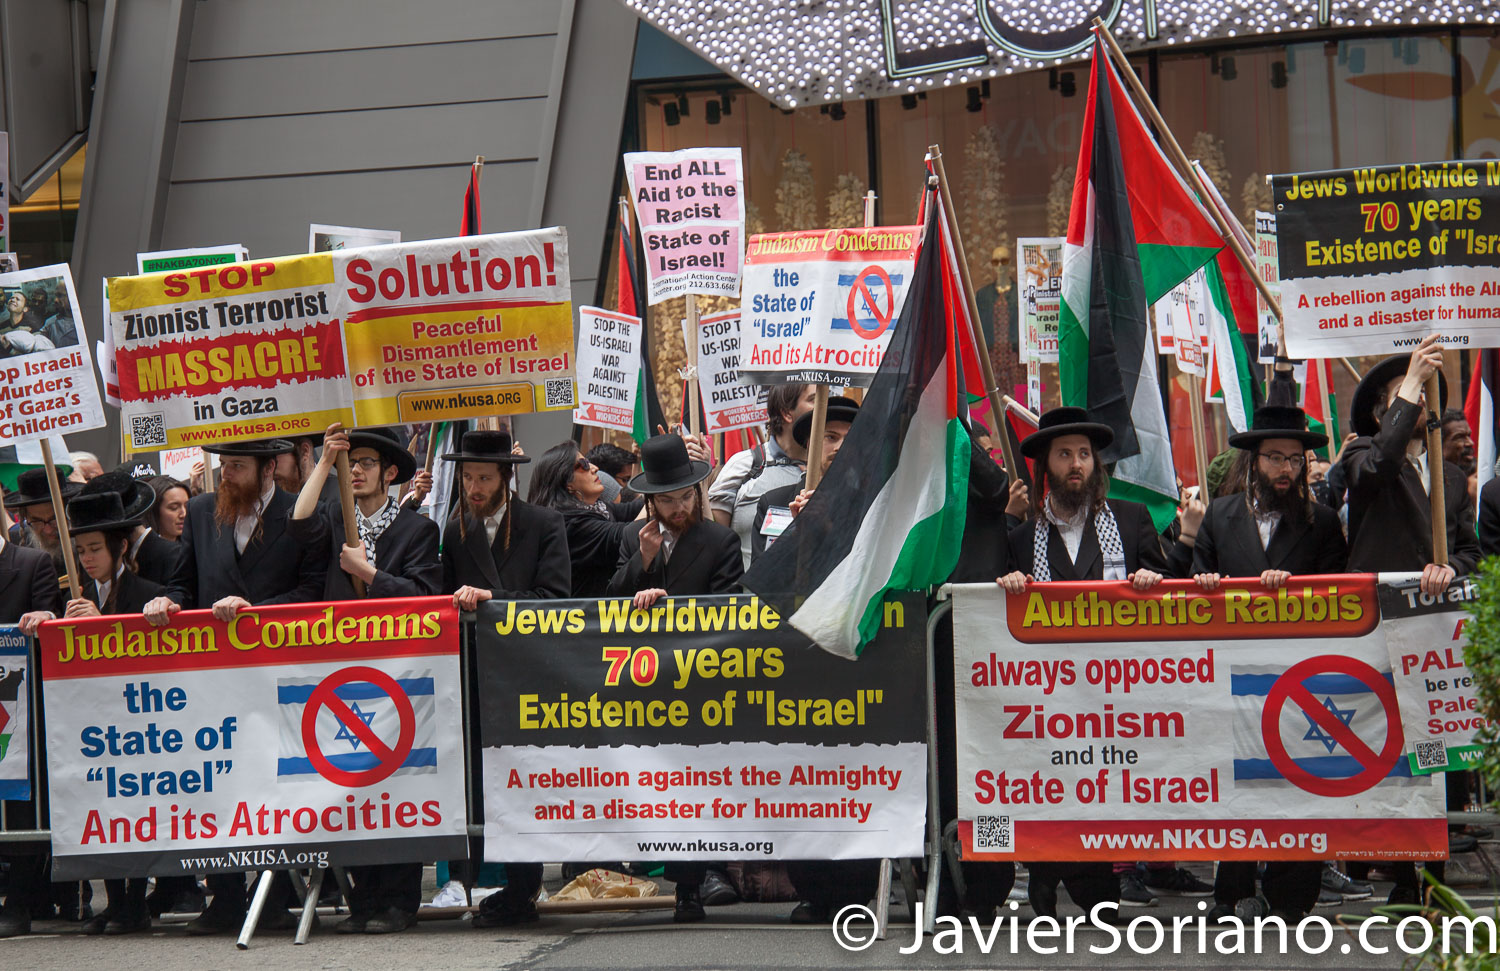 18/5/2018 Manhattan, ciudad de Nueva York - Grupo de Judíos en Times Square apoyando a Palestina. 5/18/2018. New York City - A group of Jews in Times Square supporting Palestine. Photo by Javier Soriano/www.JavierSoriano.com